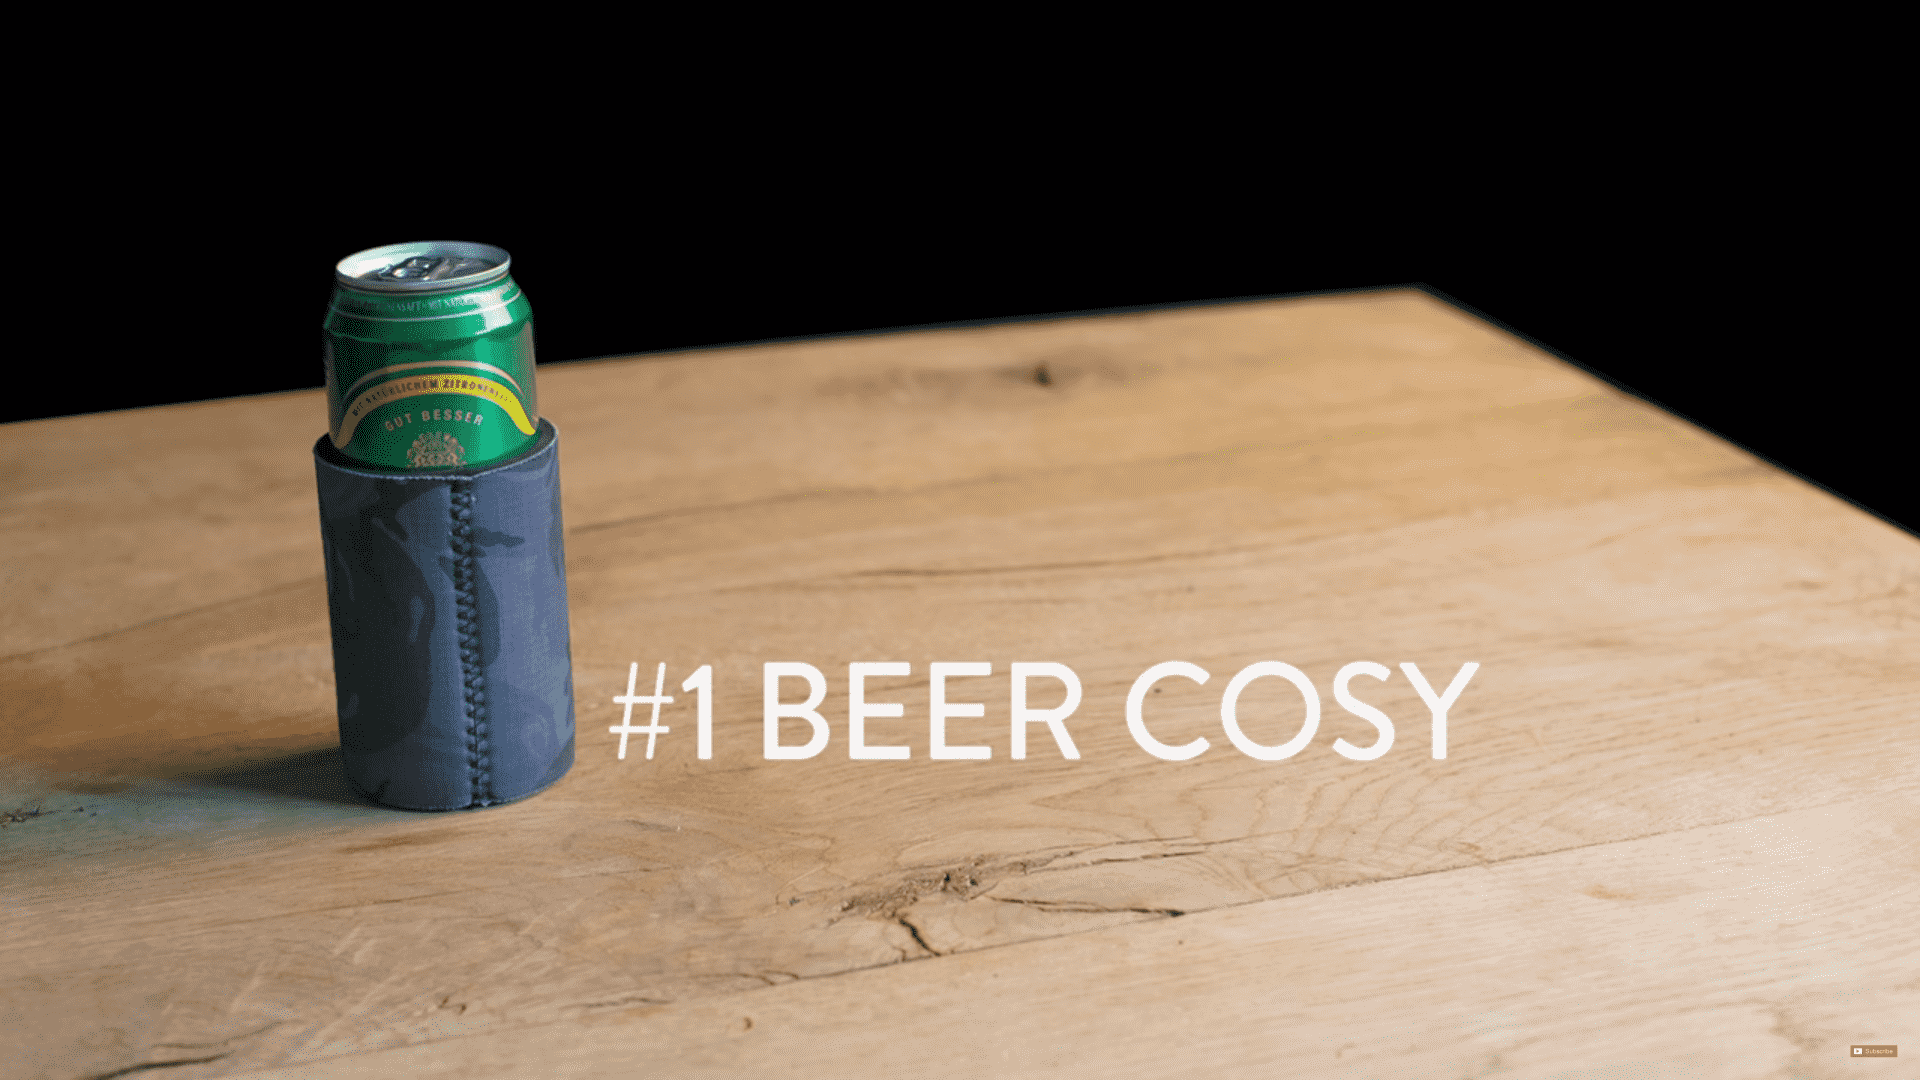 beercosy image